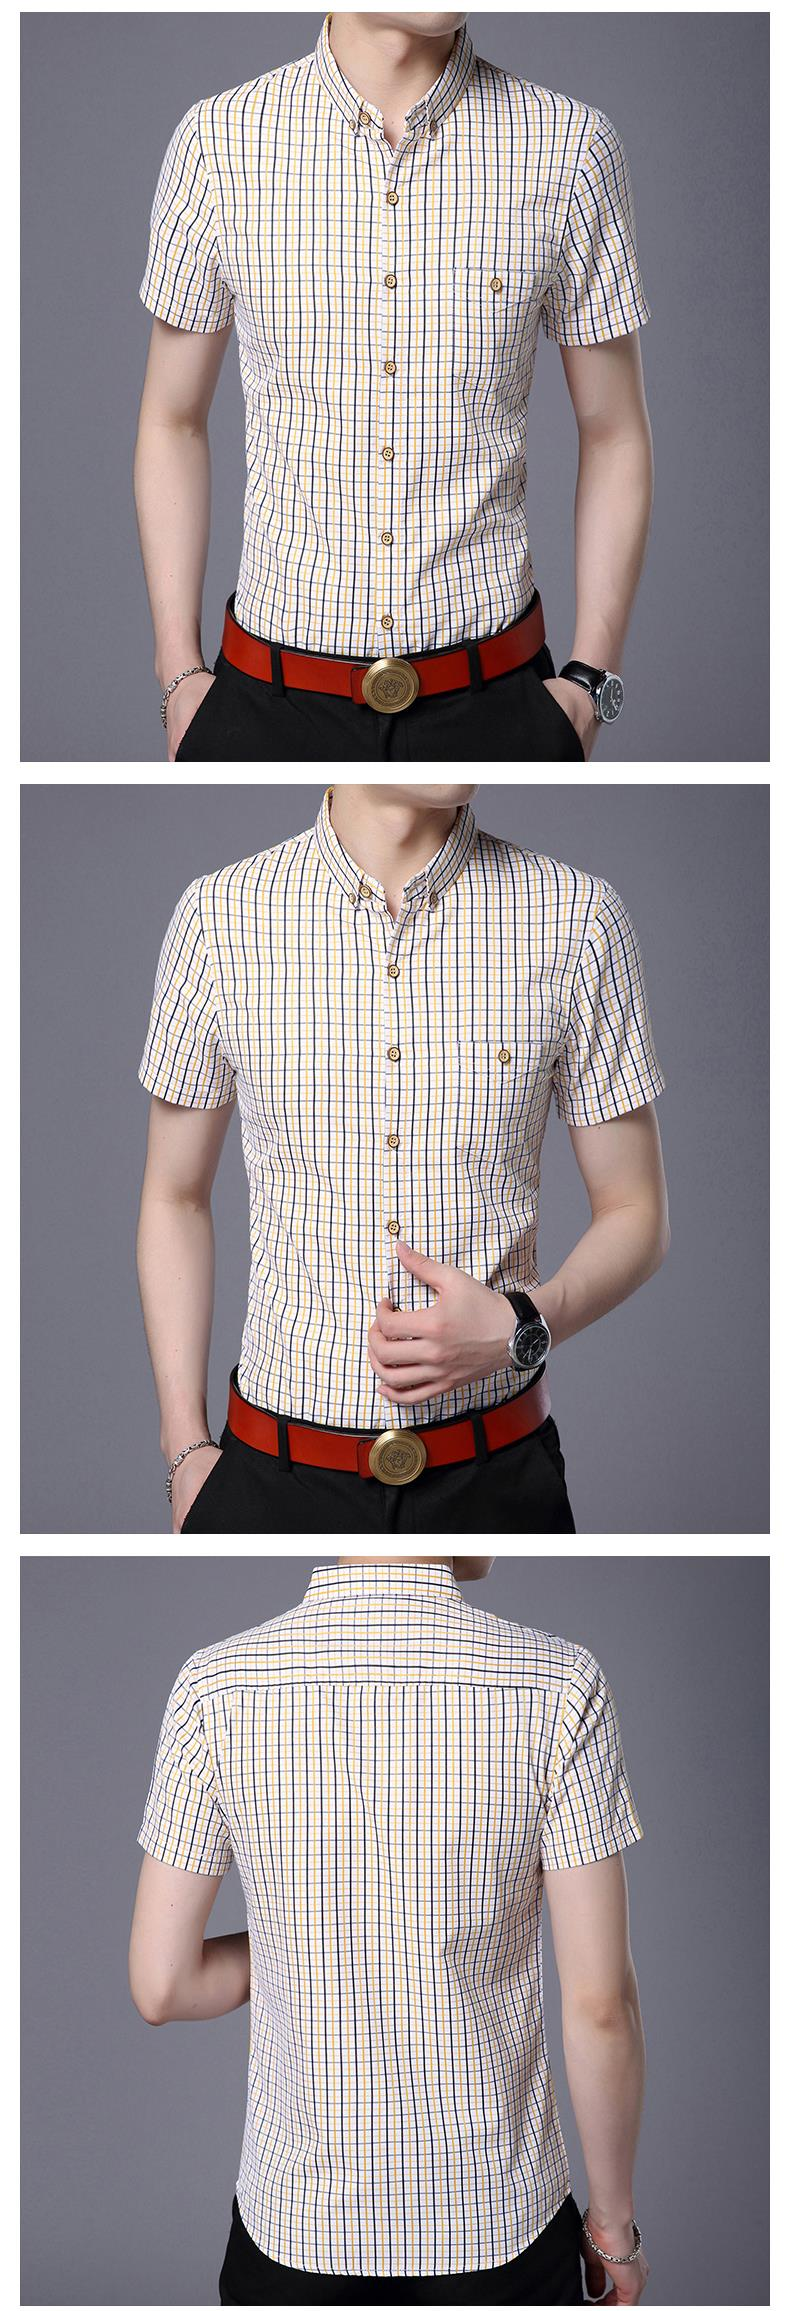 2019 Fashion Summer Brand Shirt Mens Plaid Workout Short Sleeve Slim Fit Street Wear Button Up High Quality boys Casual Clothes